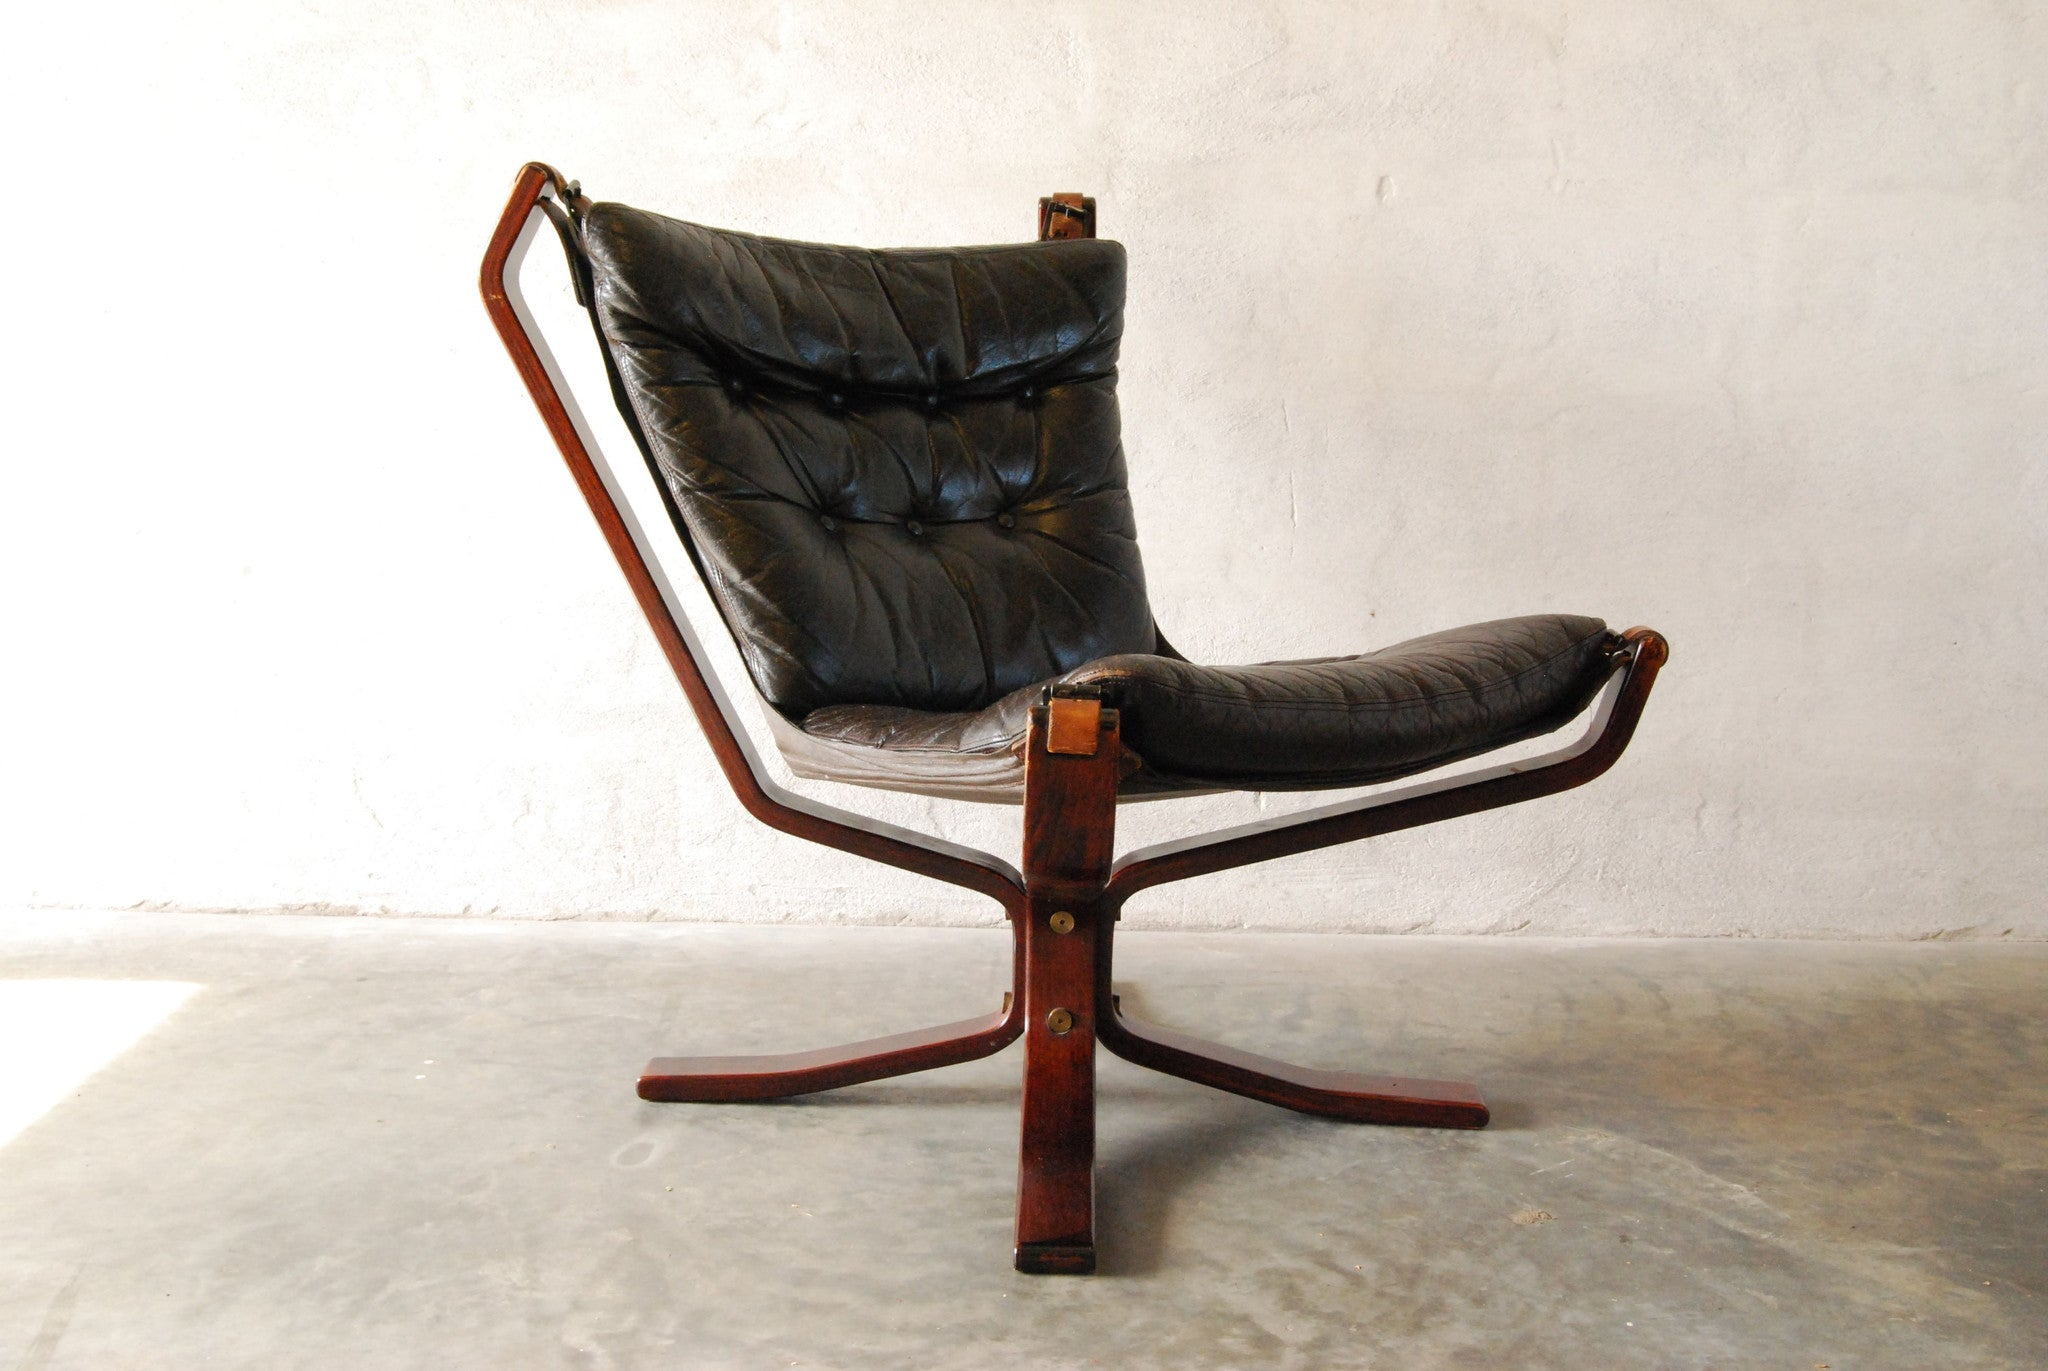 Chase & Sorensen Falcon chair by Sigurd Ressell